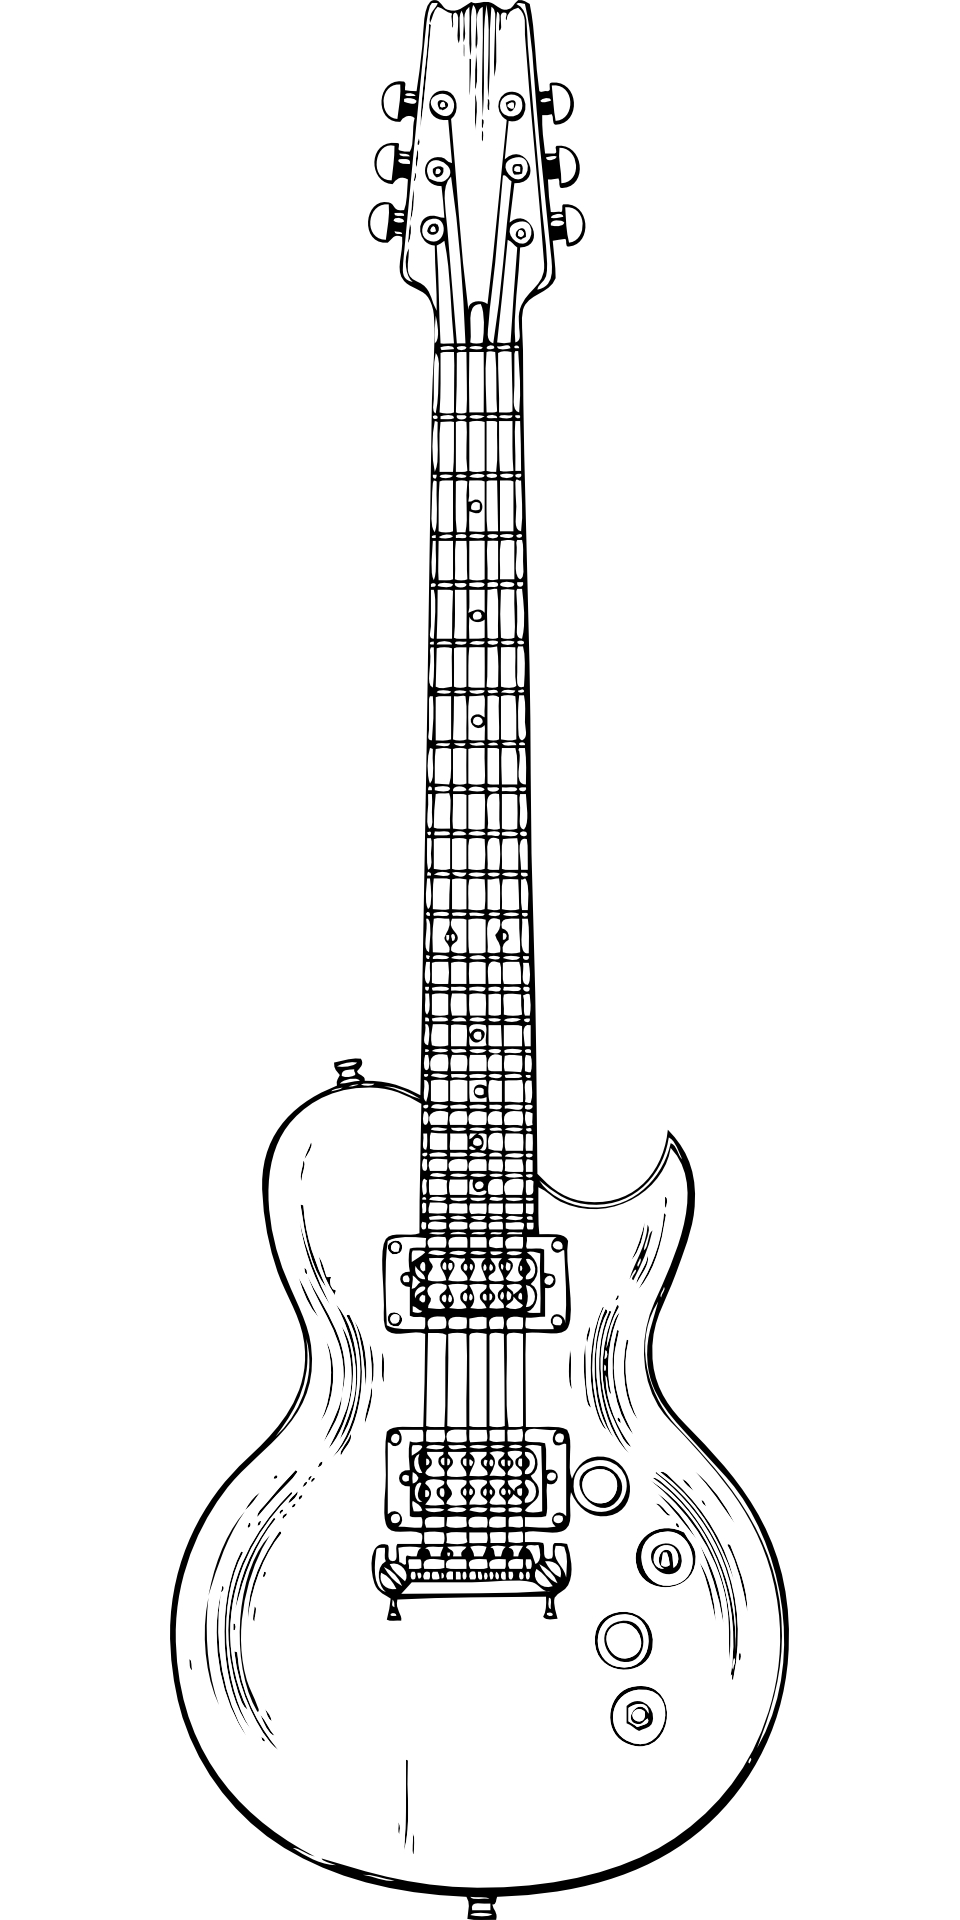 Musical instrument-electric guitar outline vector